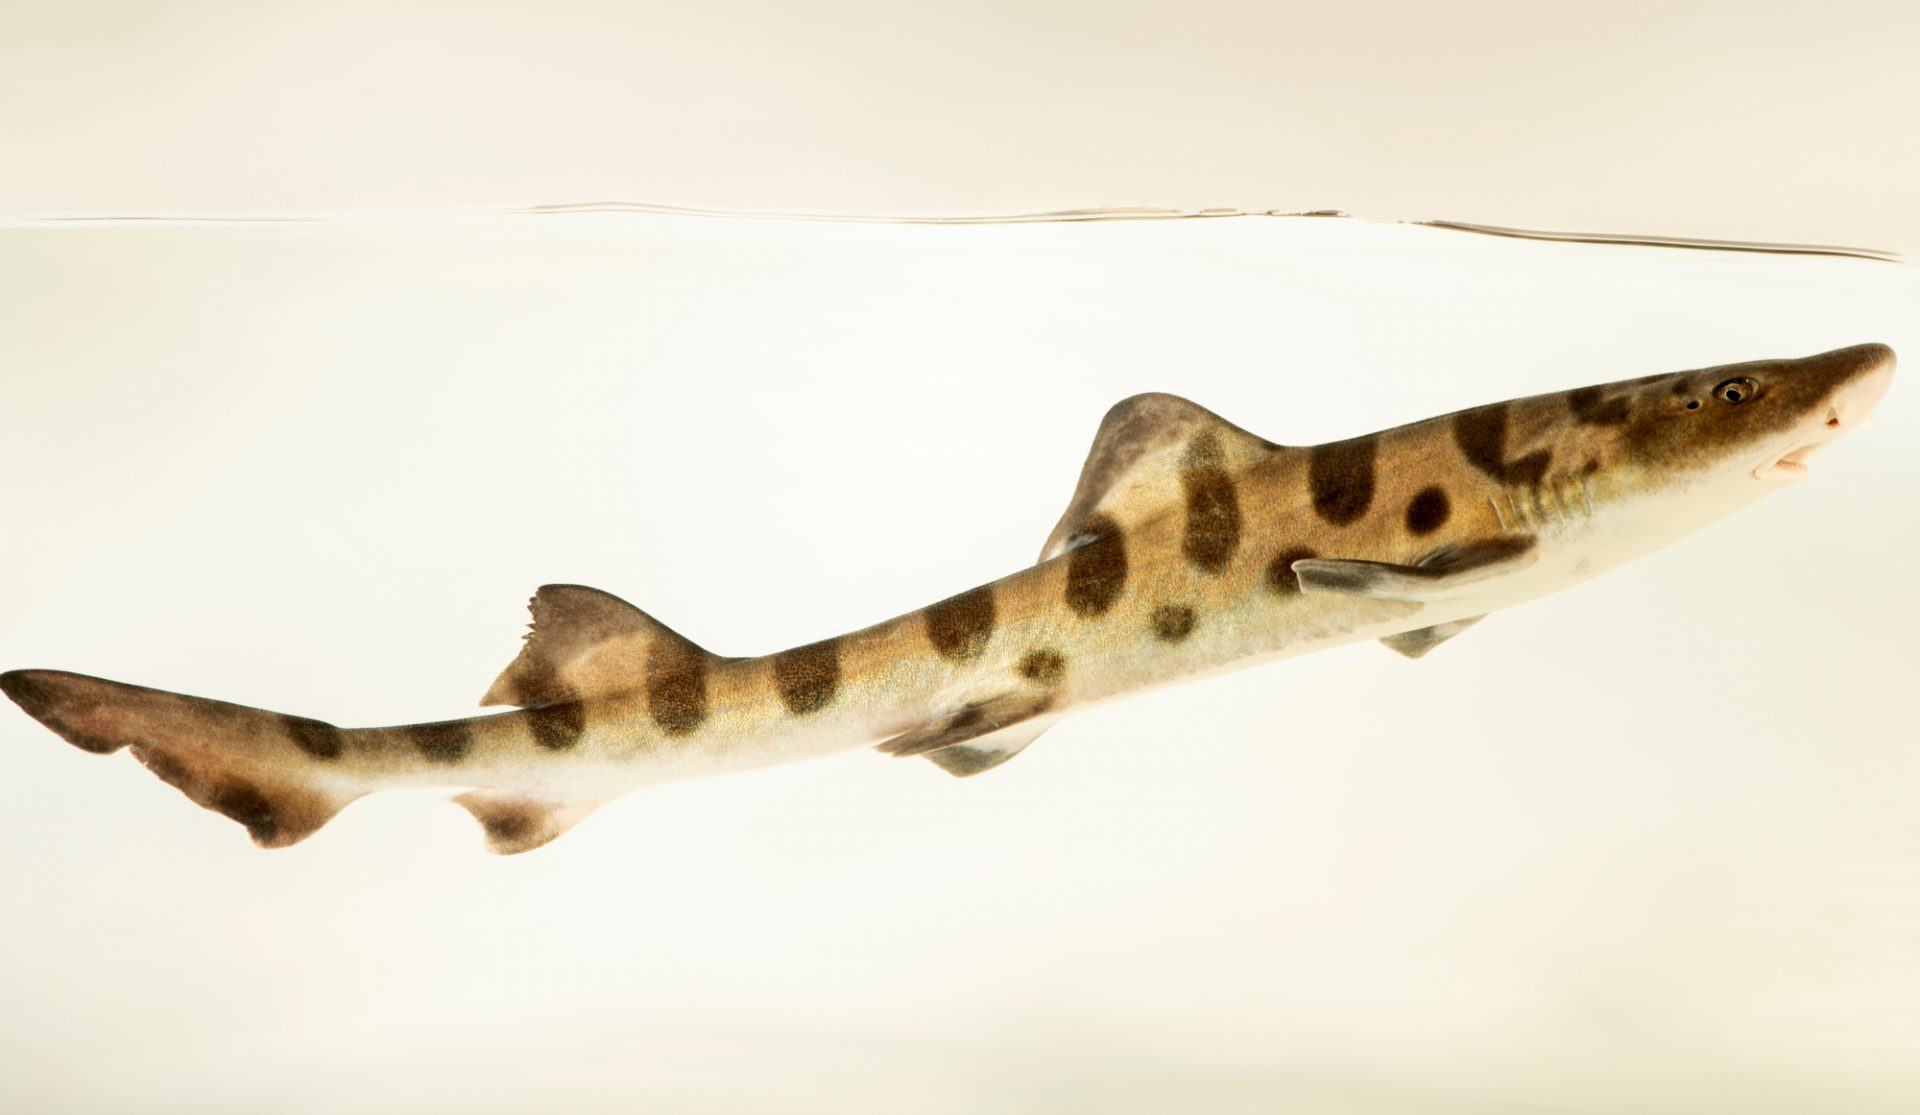 Photo: Leopard shark (Triakis semifasciata) photographed at Downtown Aquarium in Denver, Colorado.